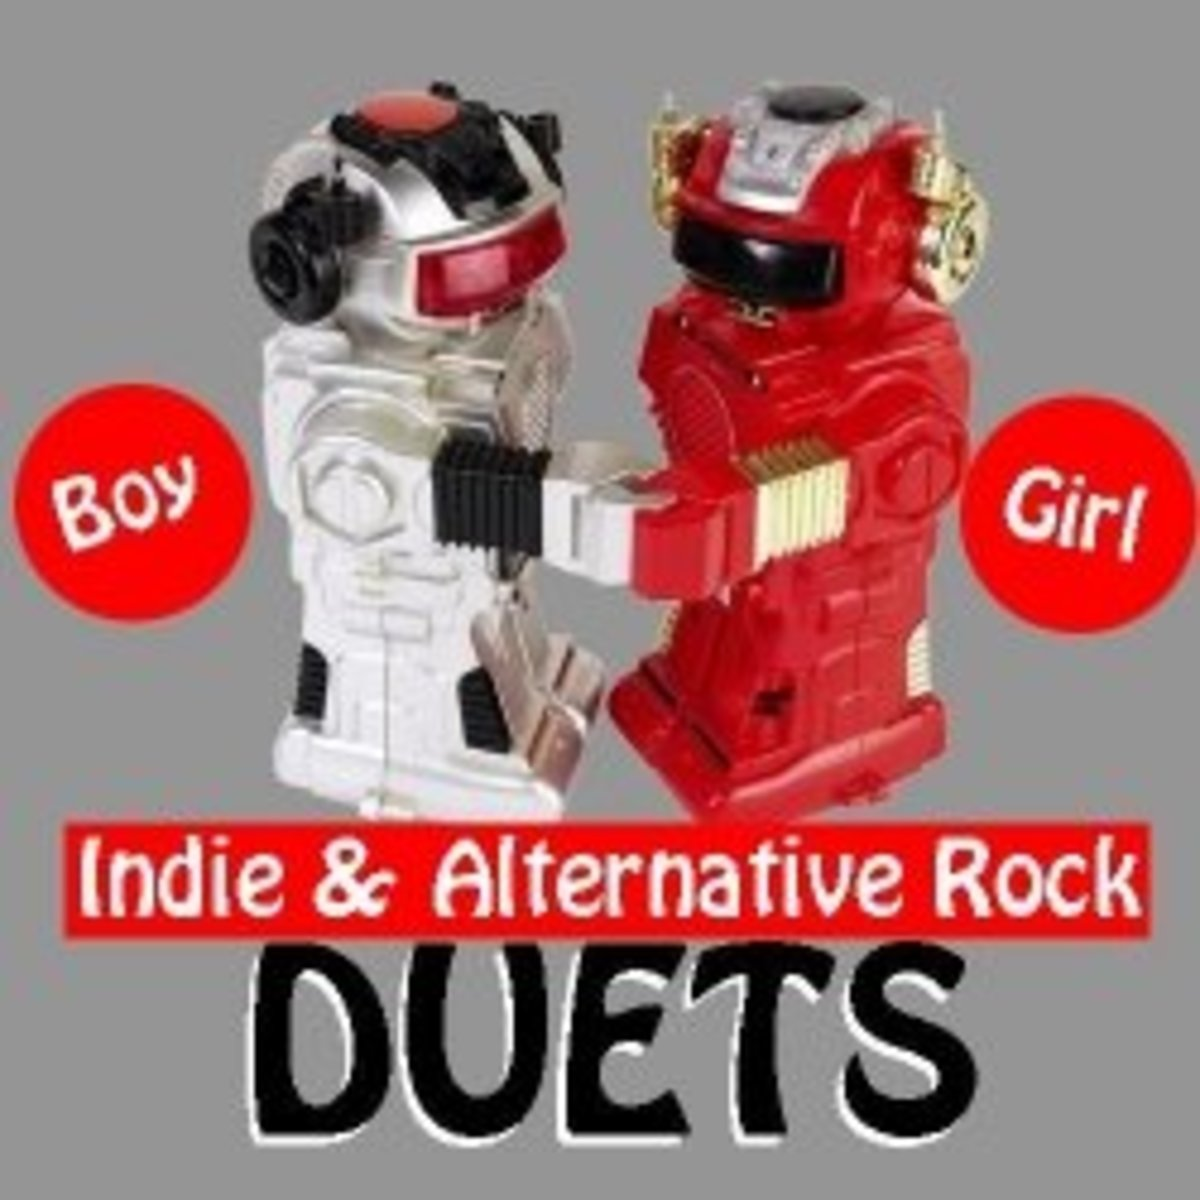 Alternative Rock and Indie Duets